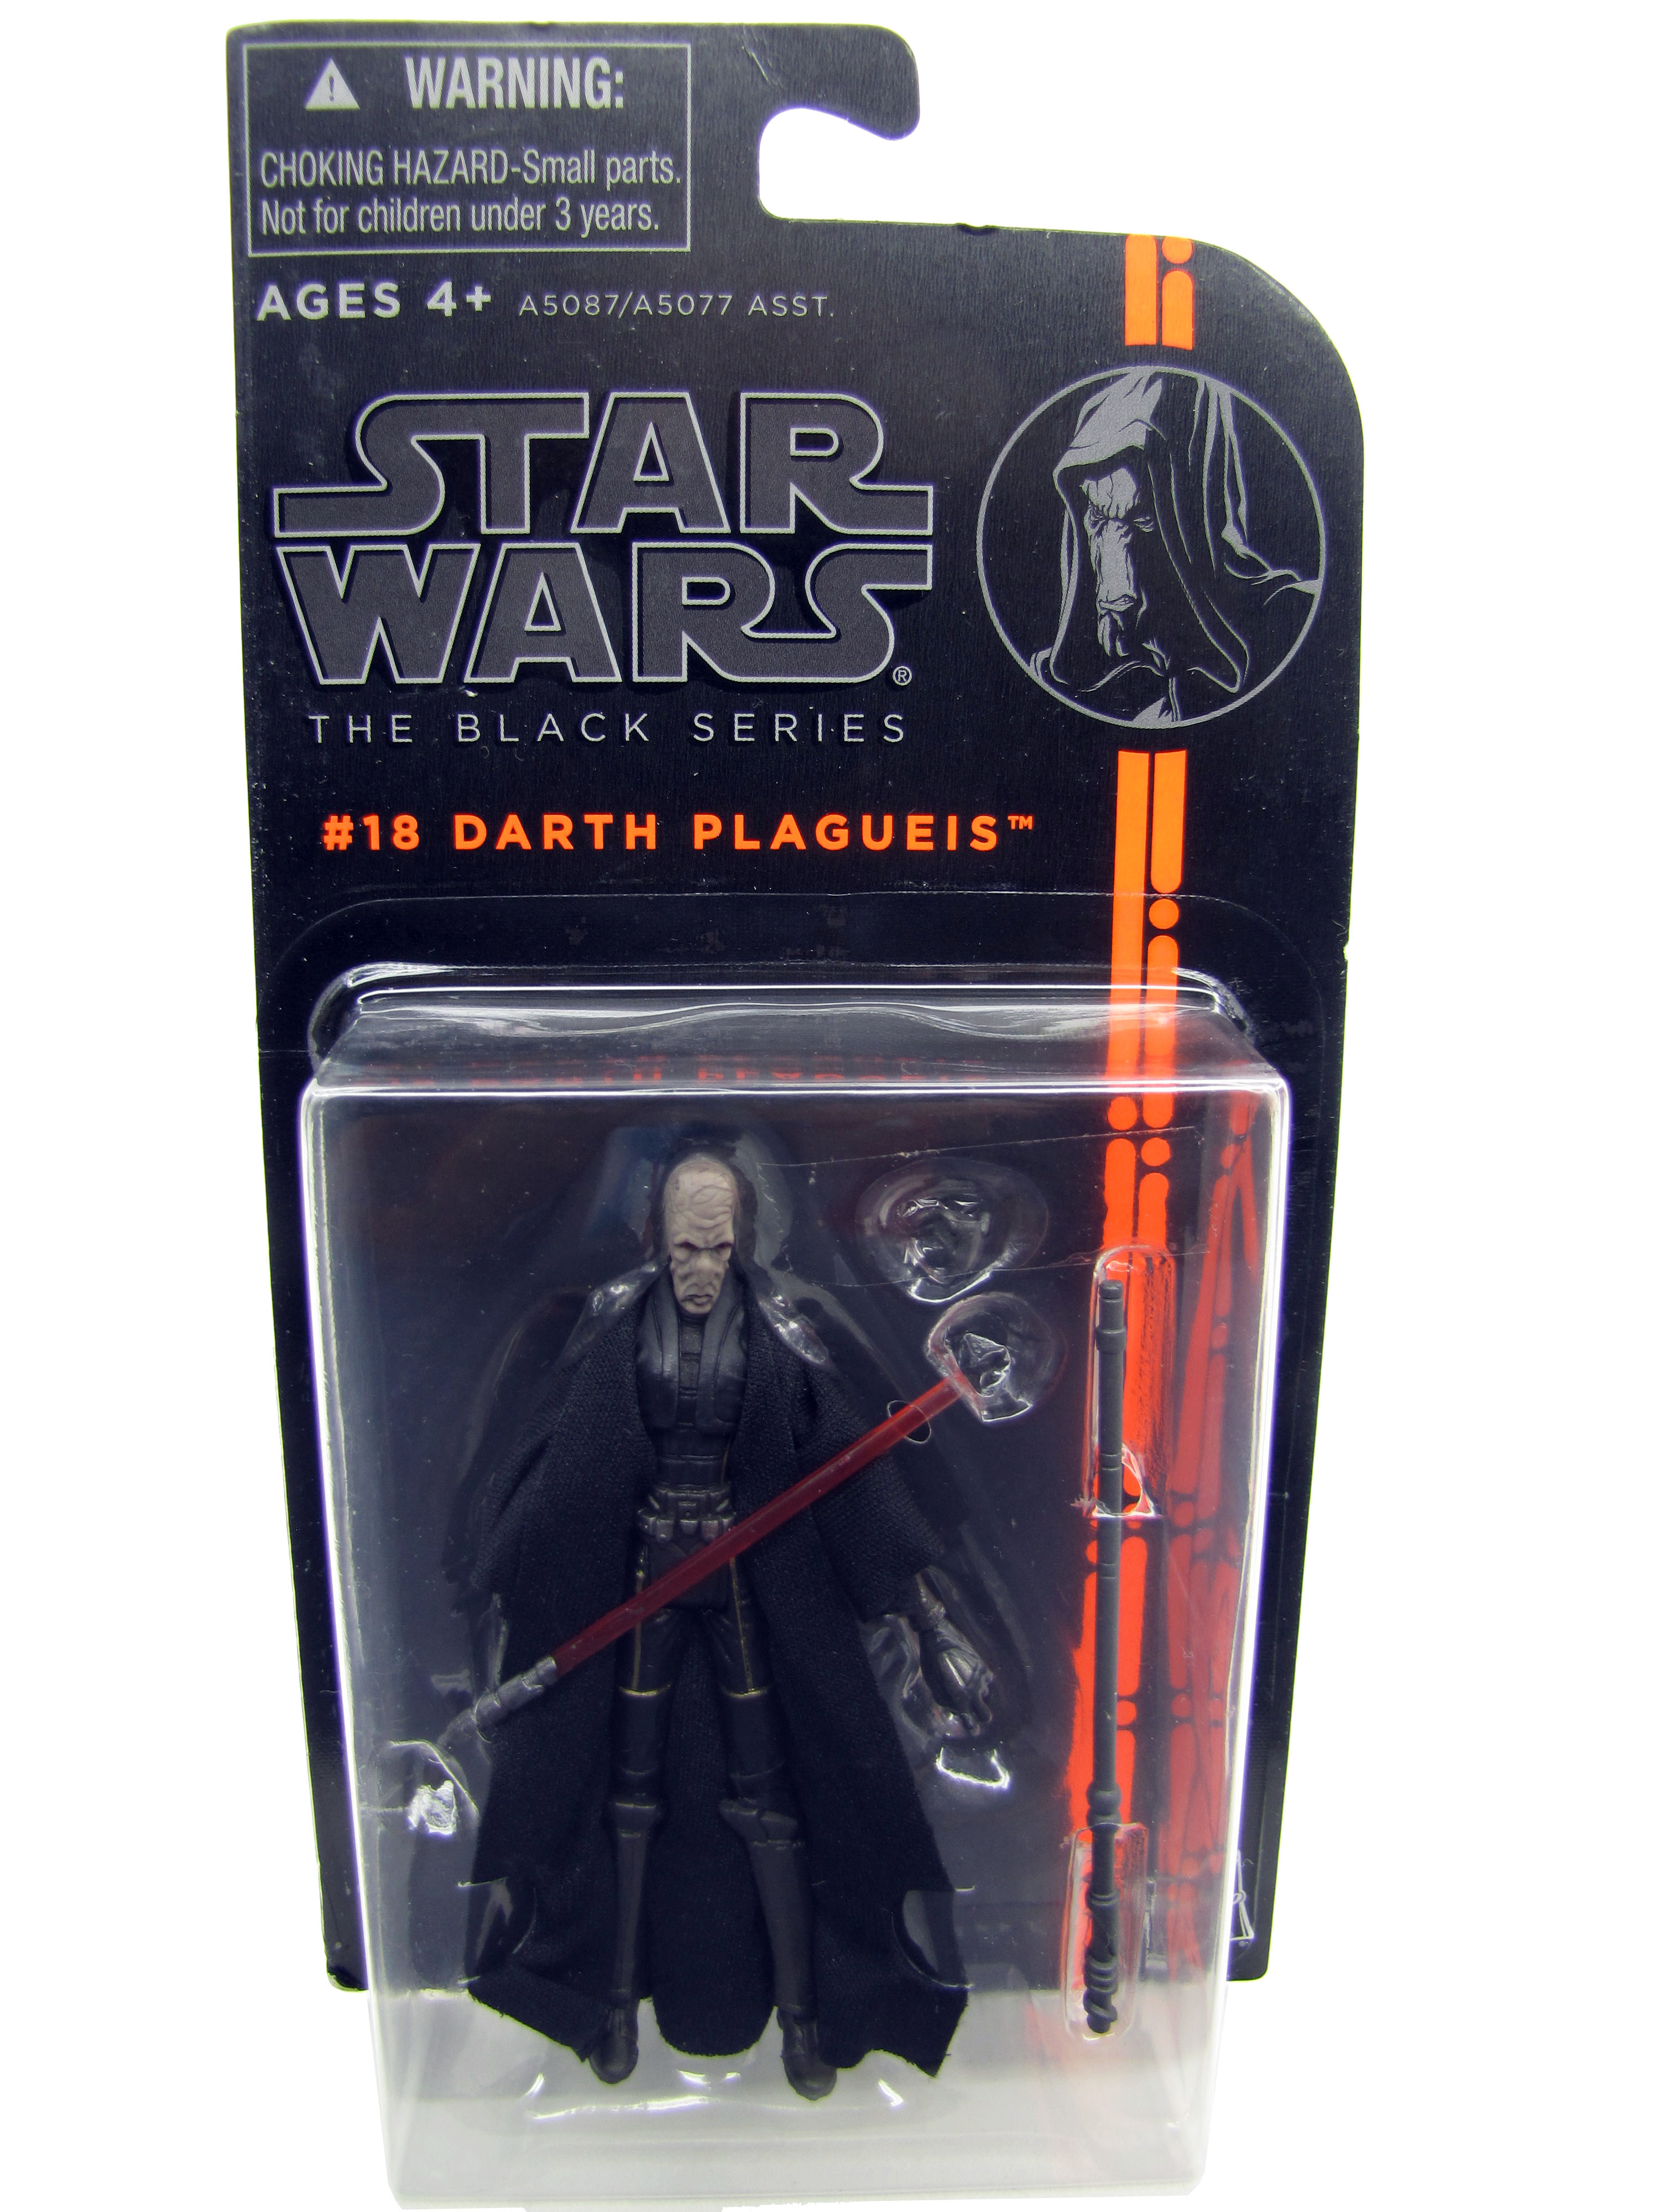 2013 Star Wars The Black Series #18: DARTH PLAGUEIS Sealed MOC